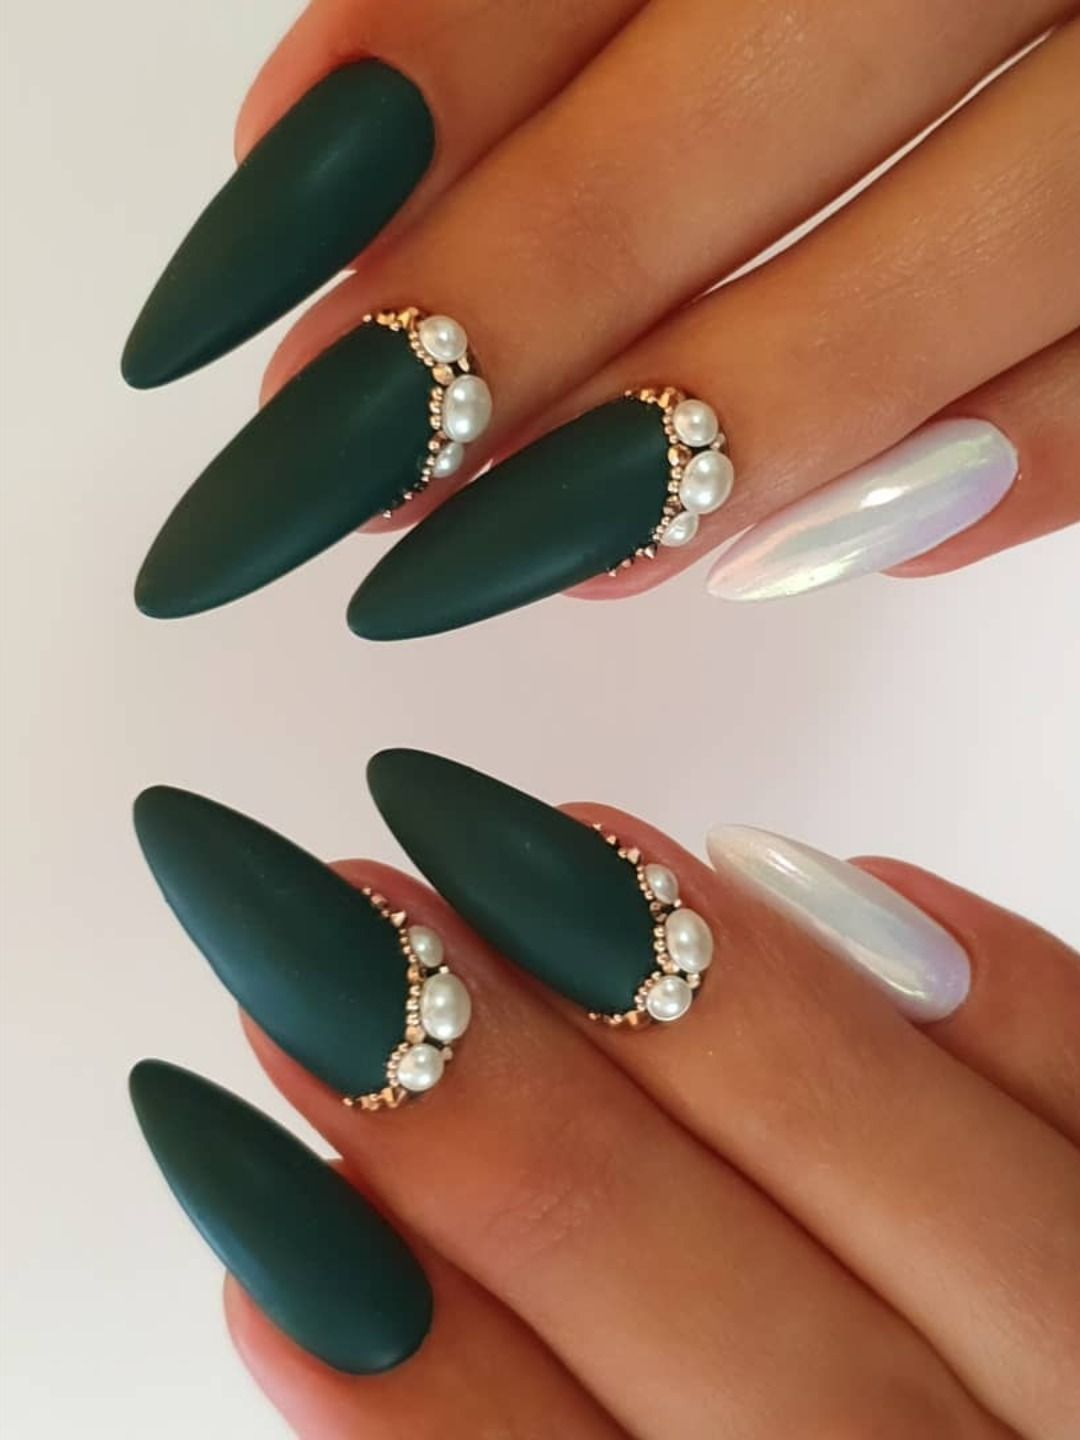 Dark Green Nails Ideas To Consider For 2020 Stylish Belles In 2020 Dark Green Nails Green Acrylic Nails Green Nail Designs